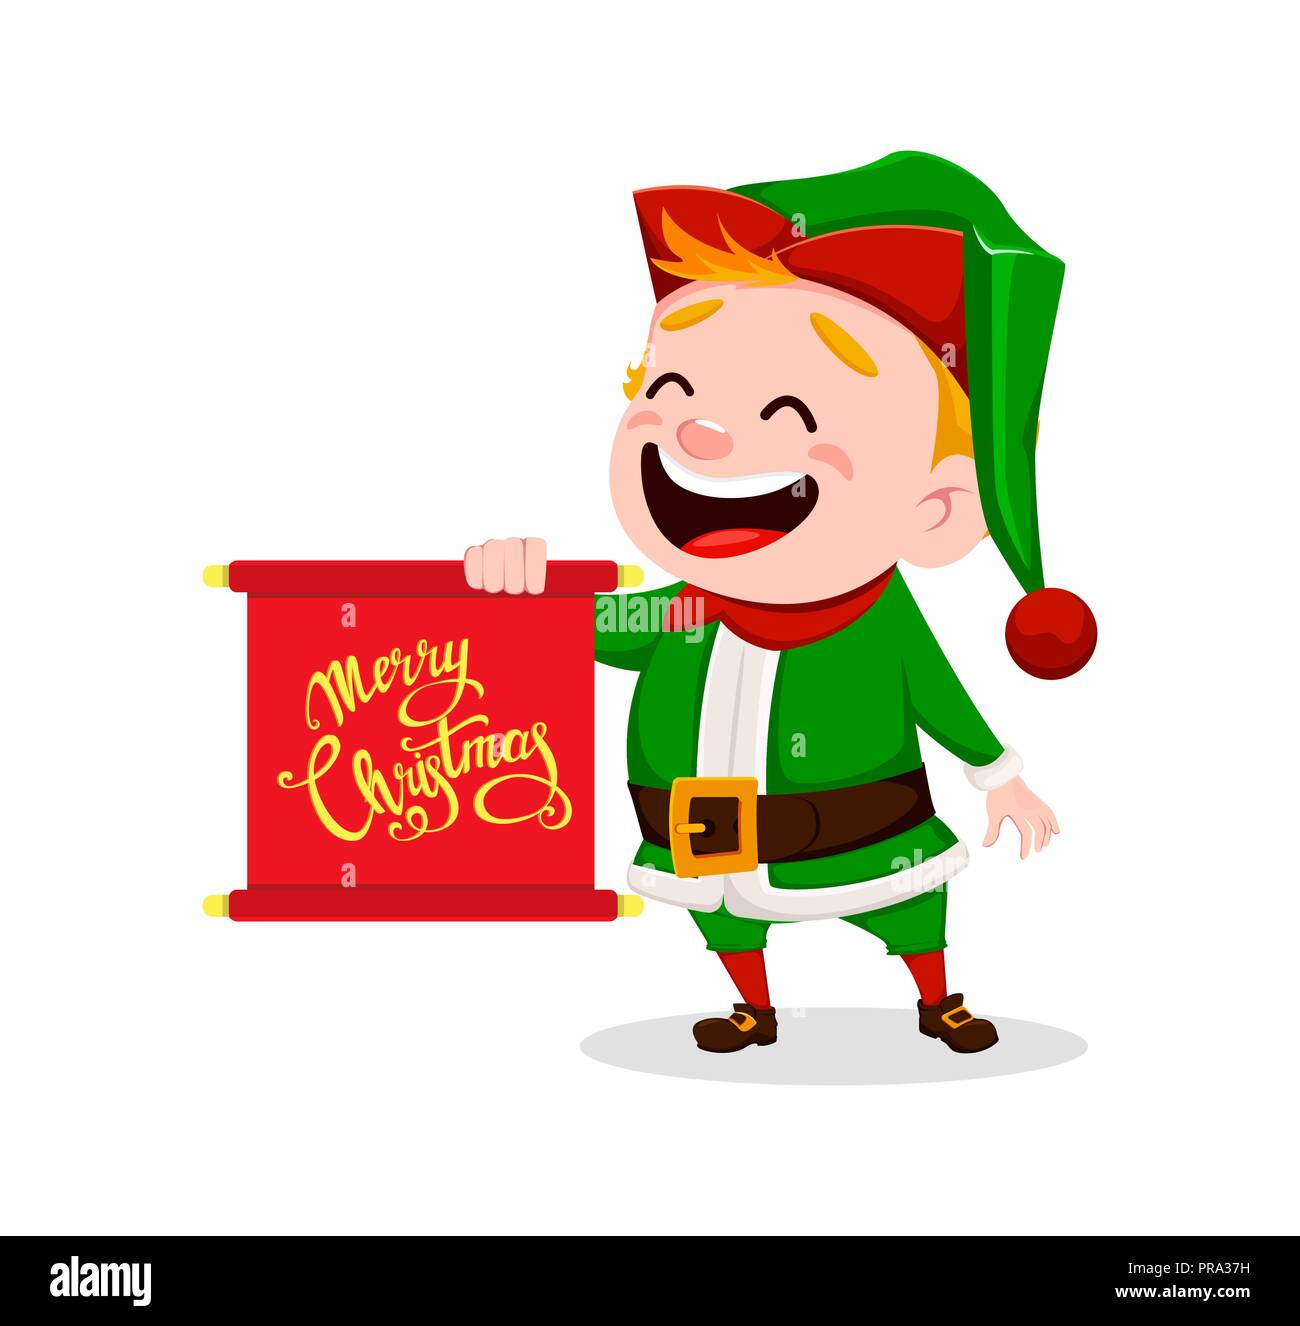 Merry christmas funny santa claus helper cheerful cute elf merry christmas funny santa claus helper cheerful cute elf cartoon character holding scroll with greetings usable for greeting card banner poste m4hsunfo